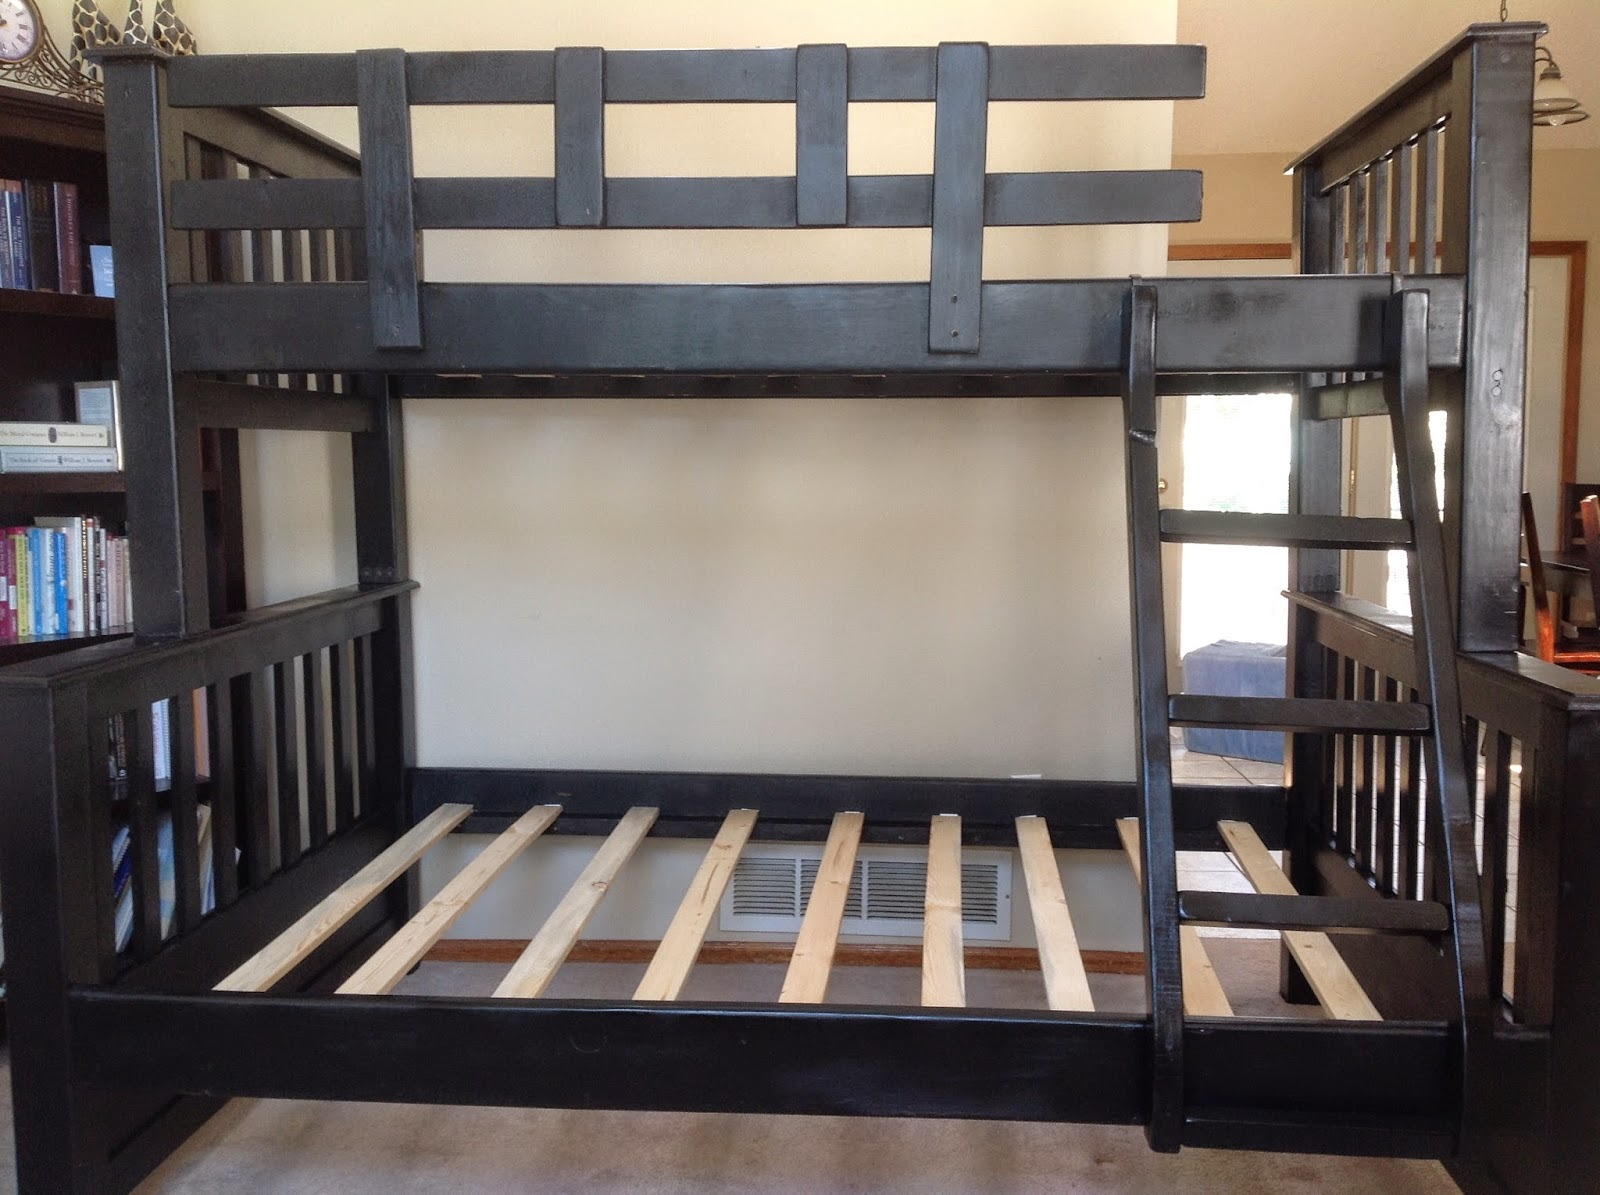 Iron crib for sale craigslist - Craigslist Find 4